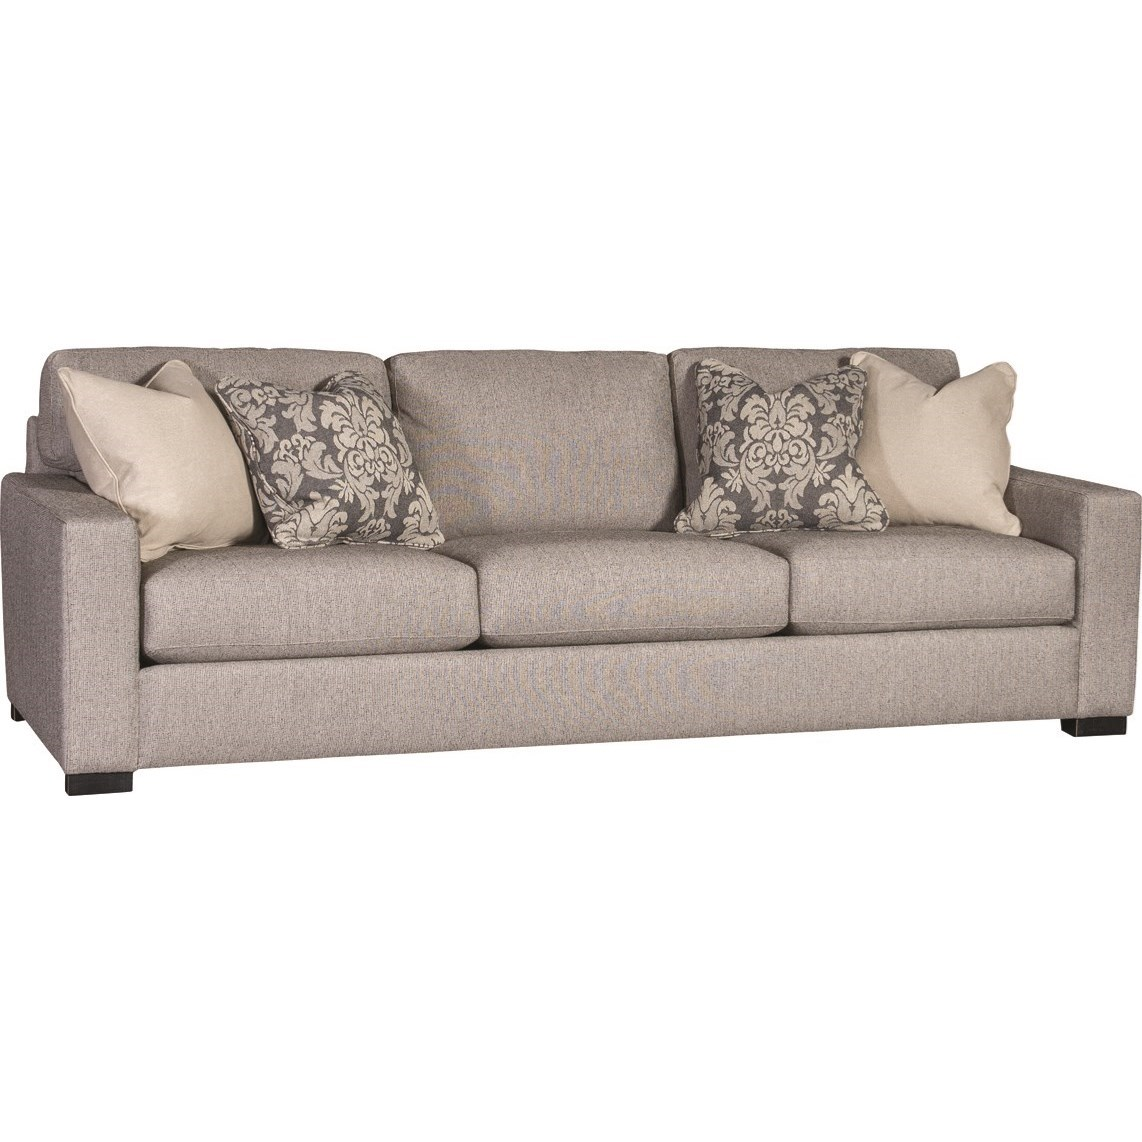 7101 Sofa by Mayo at Wilcox Furniture